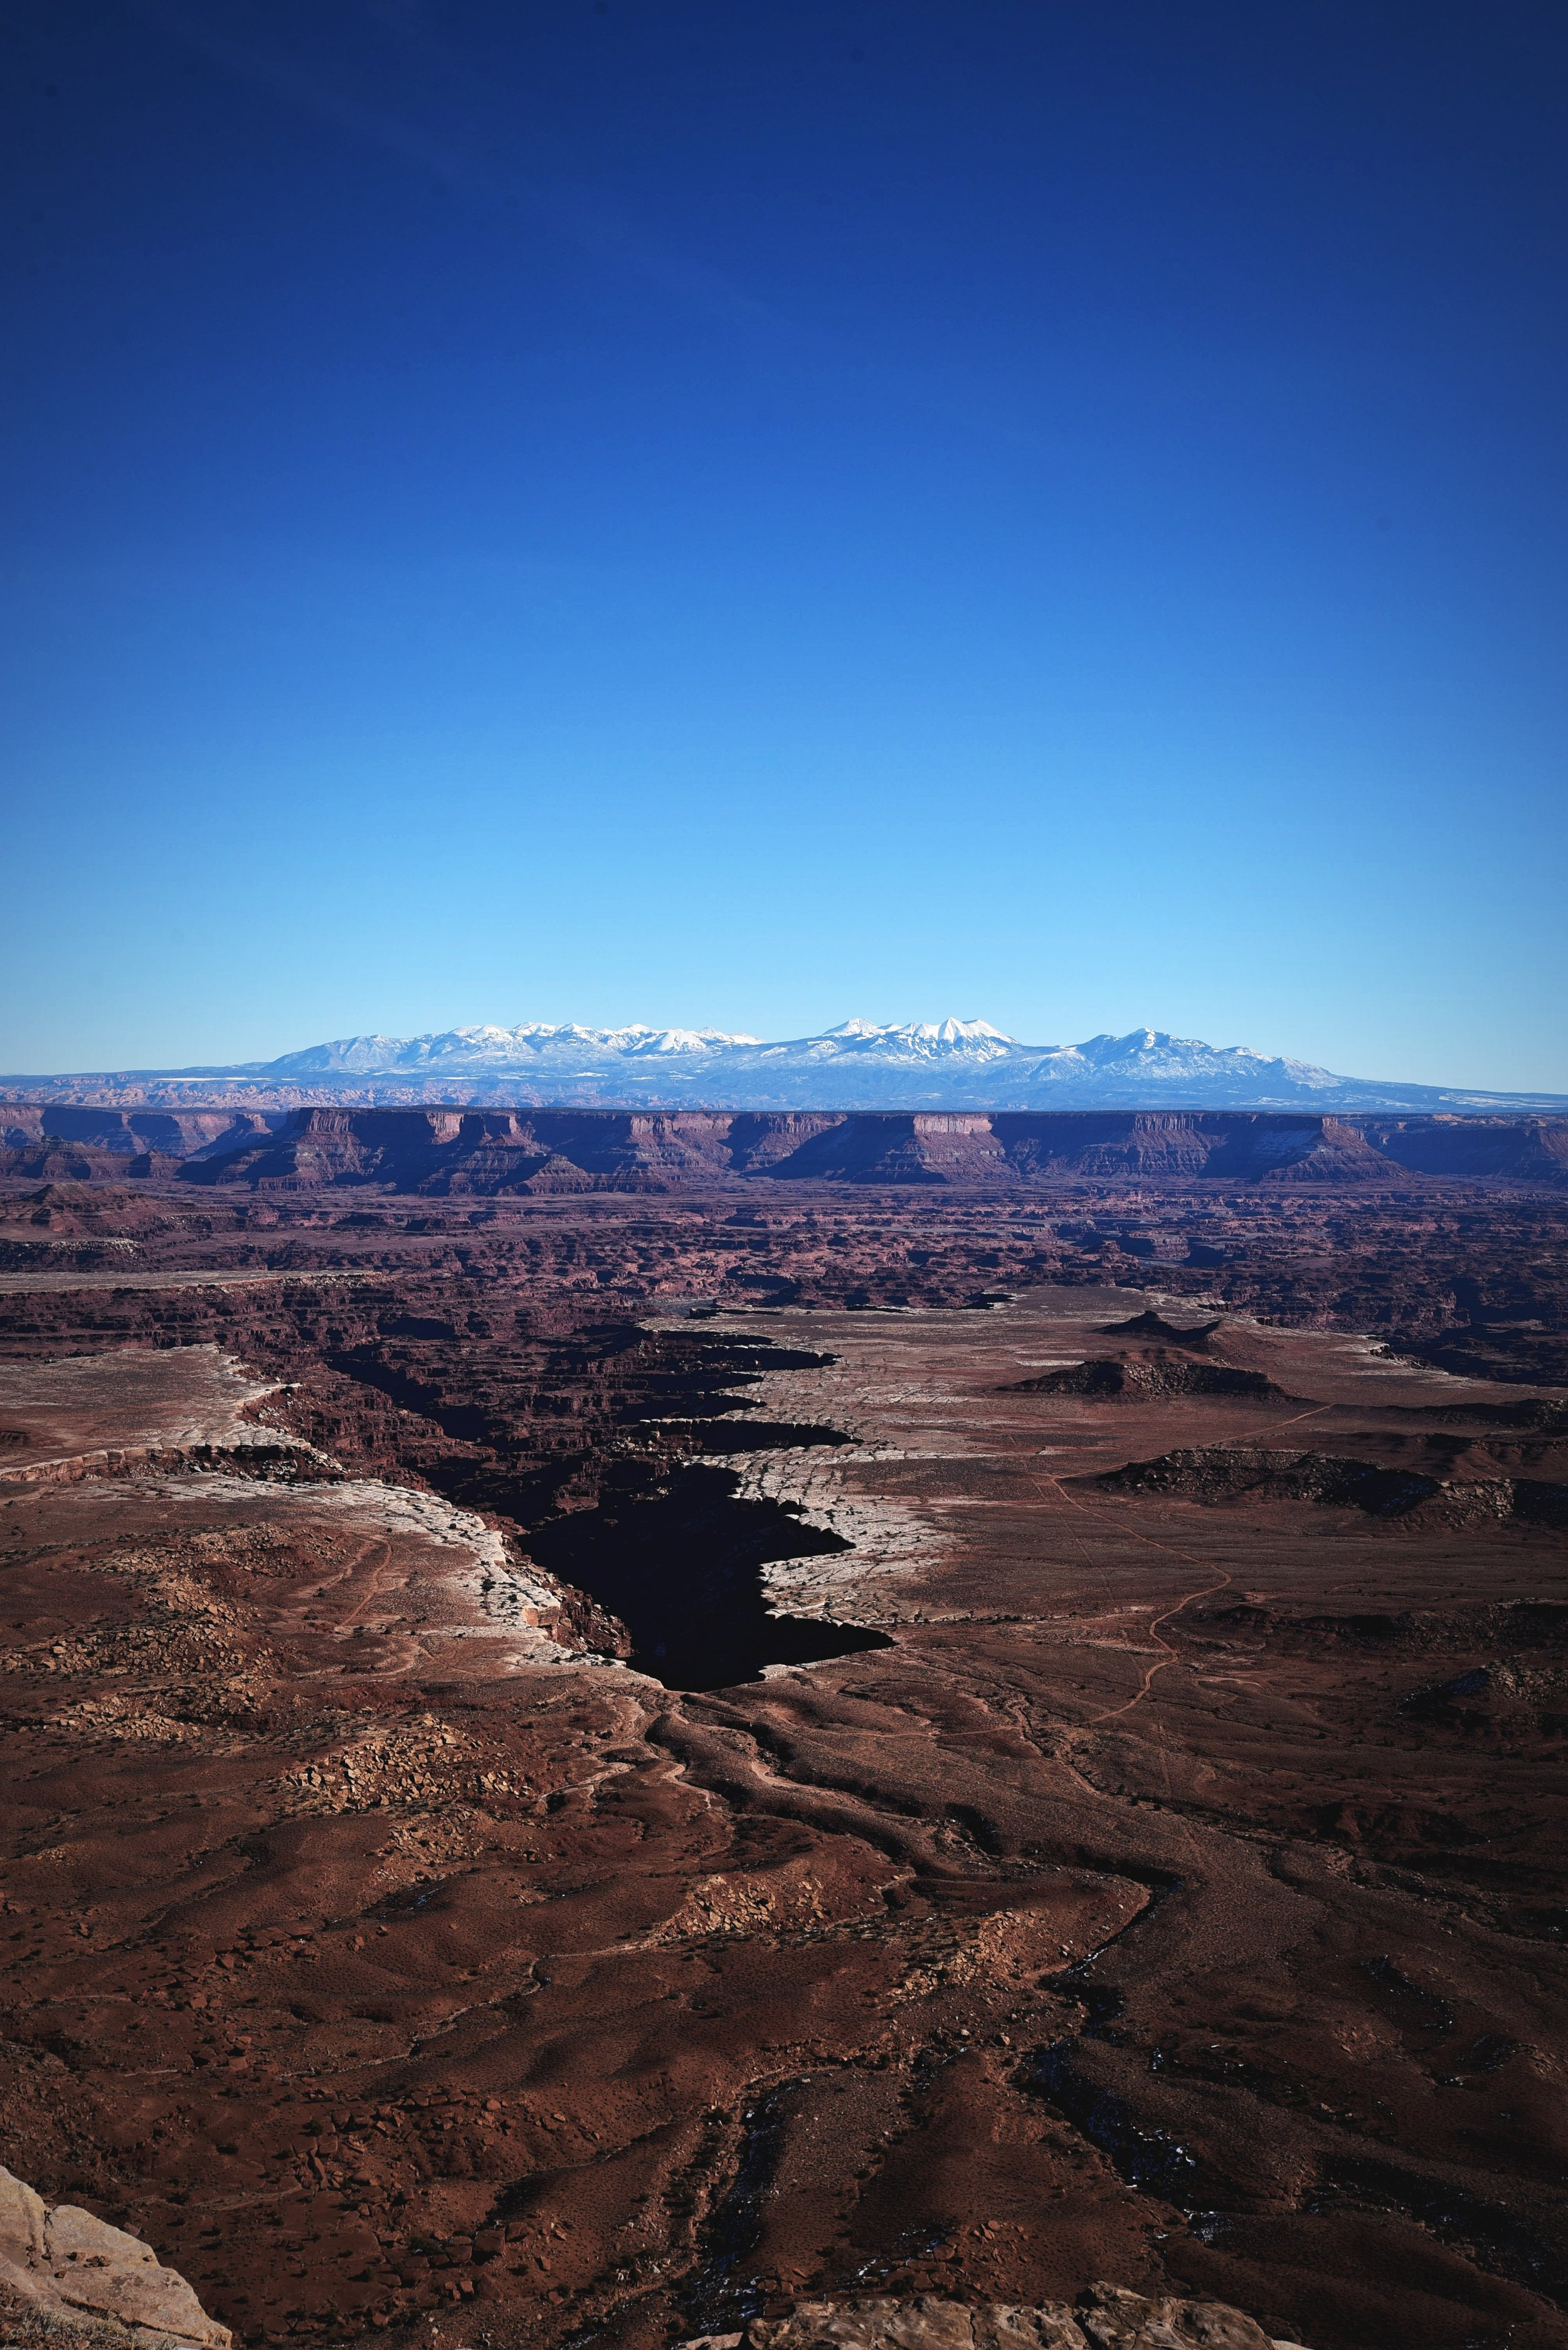 This photo shows the white rim of the canyons very clearly.